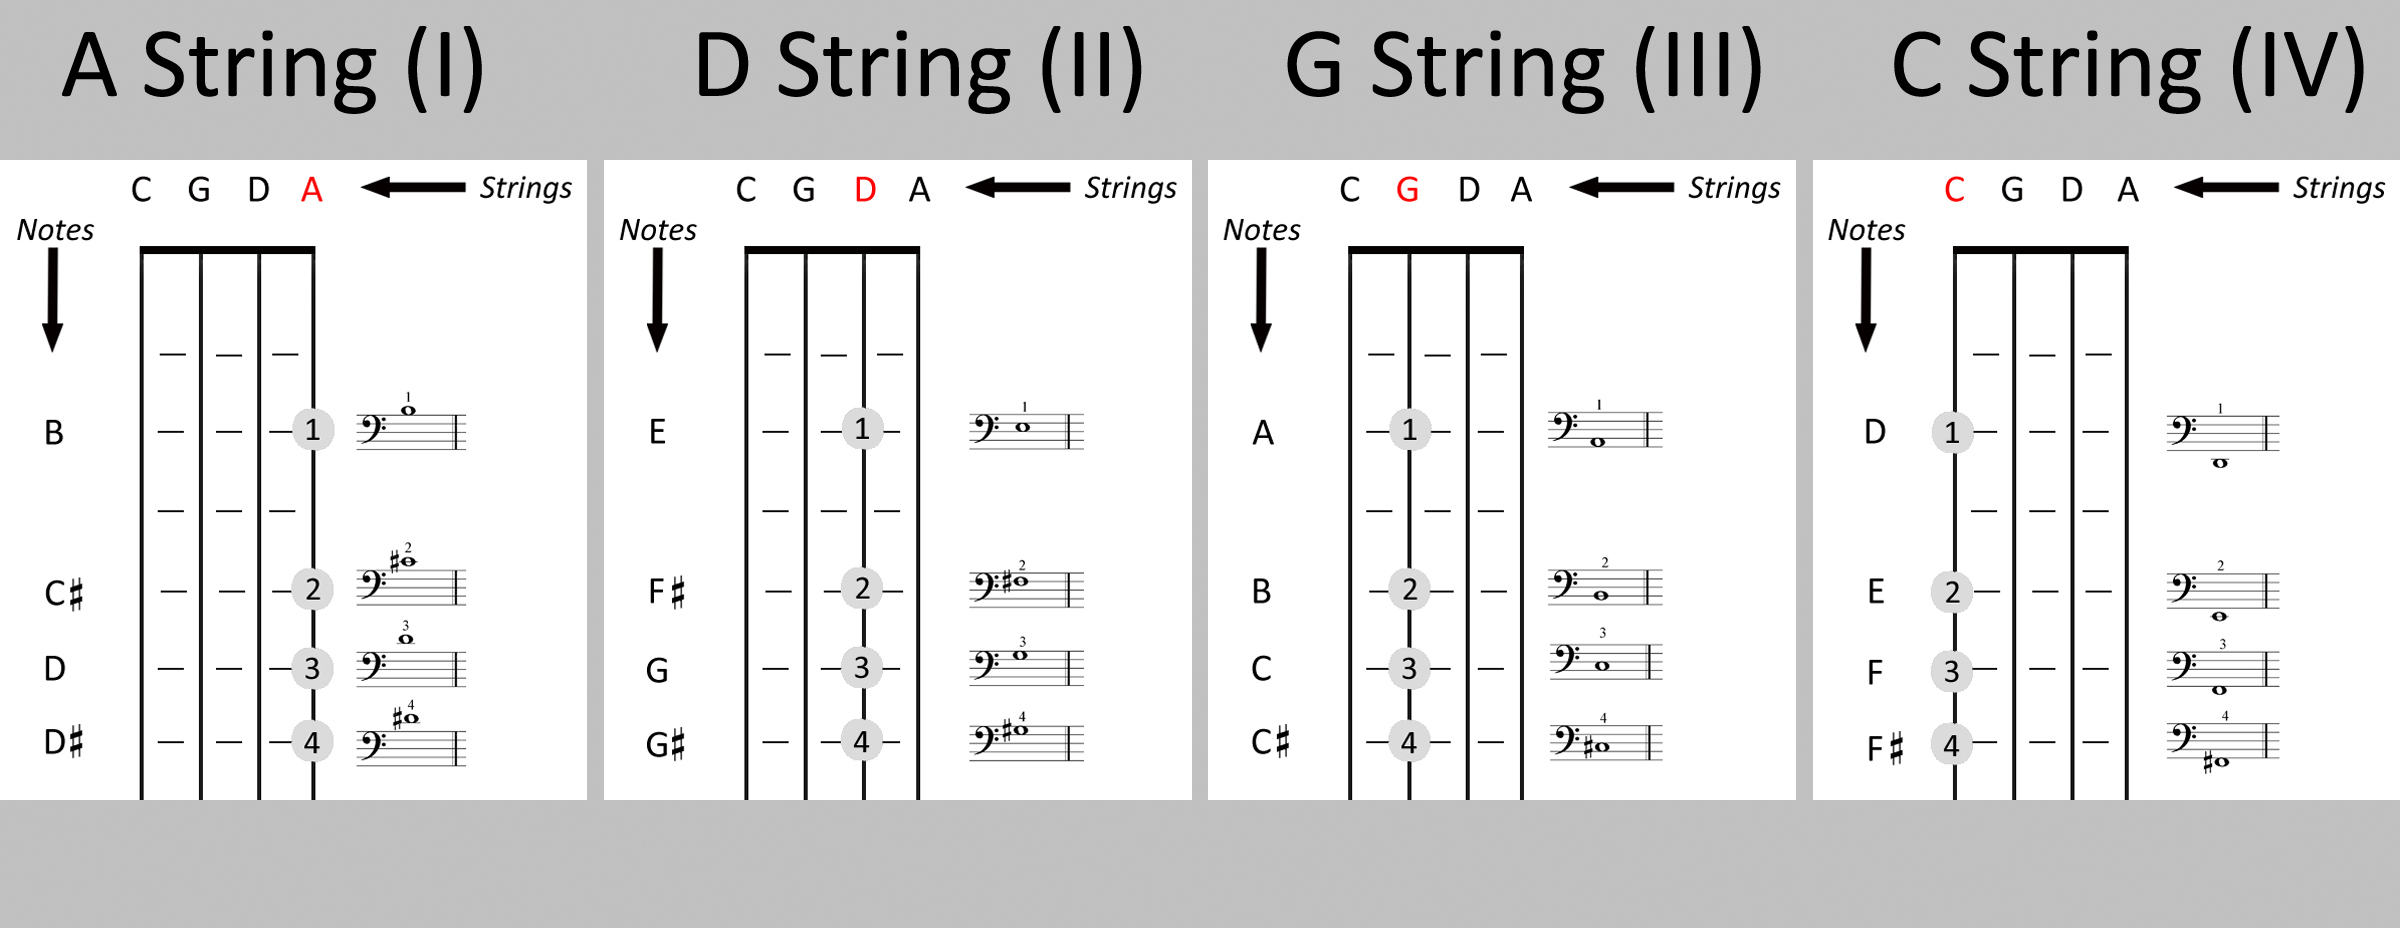 bass neck diagram ford f250 stereo wiring cello stretch position – the companion